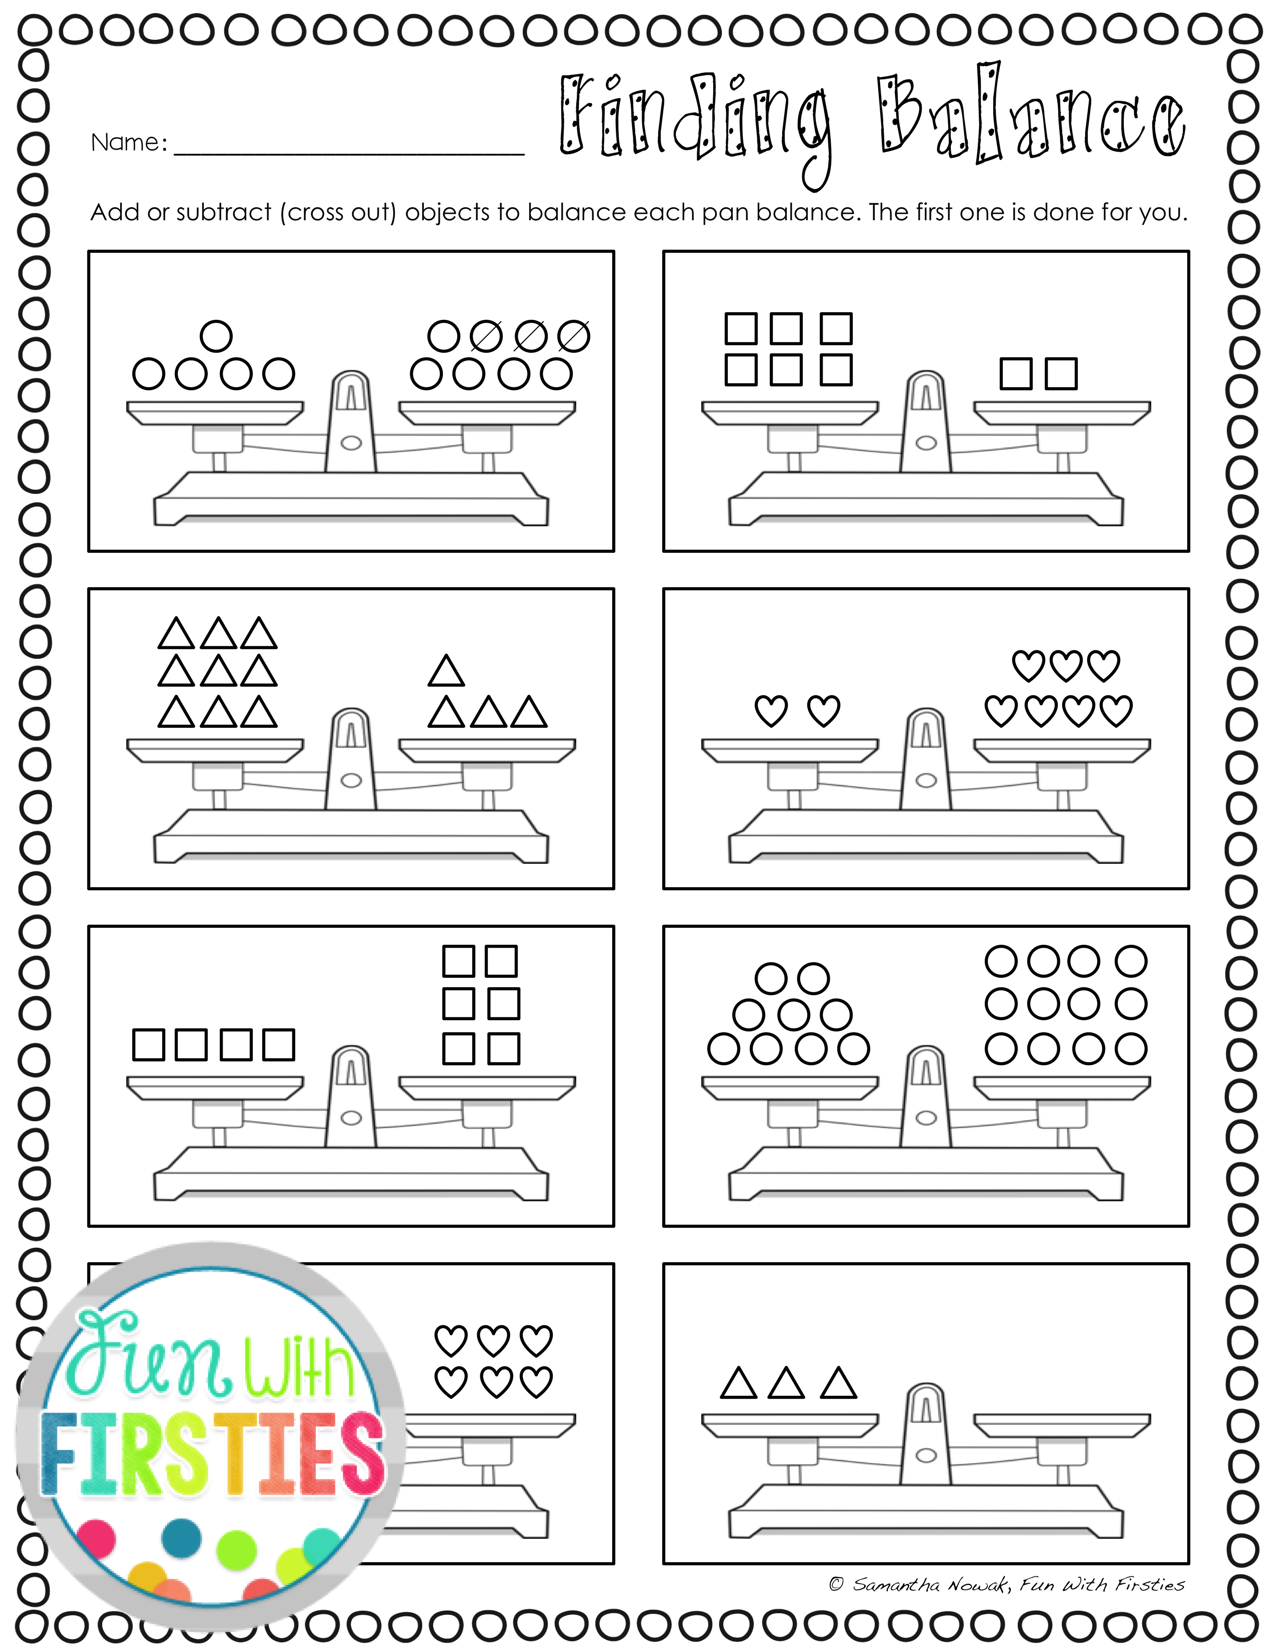 hight resolution of Balancing Equations: Print \u0026 Go! worksheets for extra practice and/or  assessment   First grade math worksheets